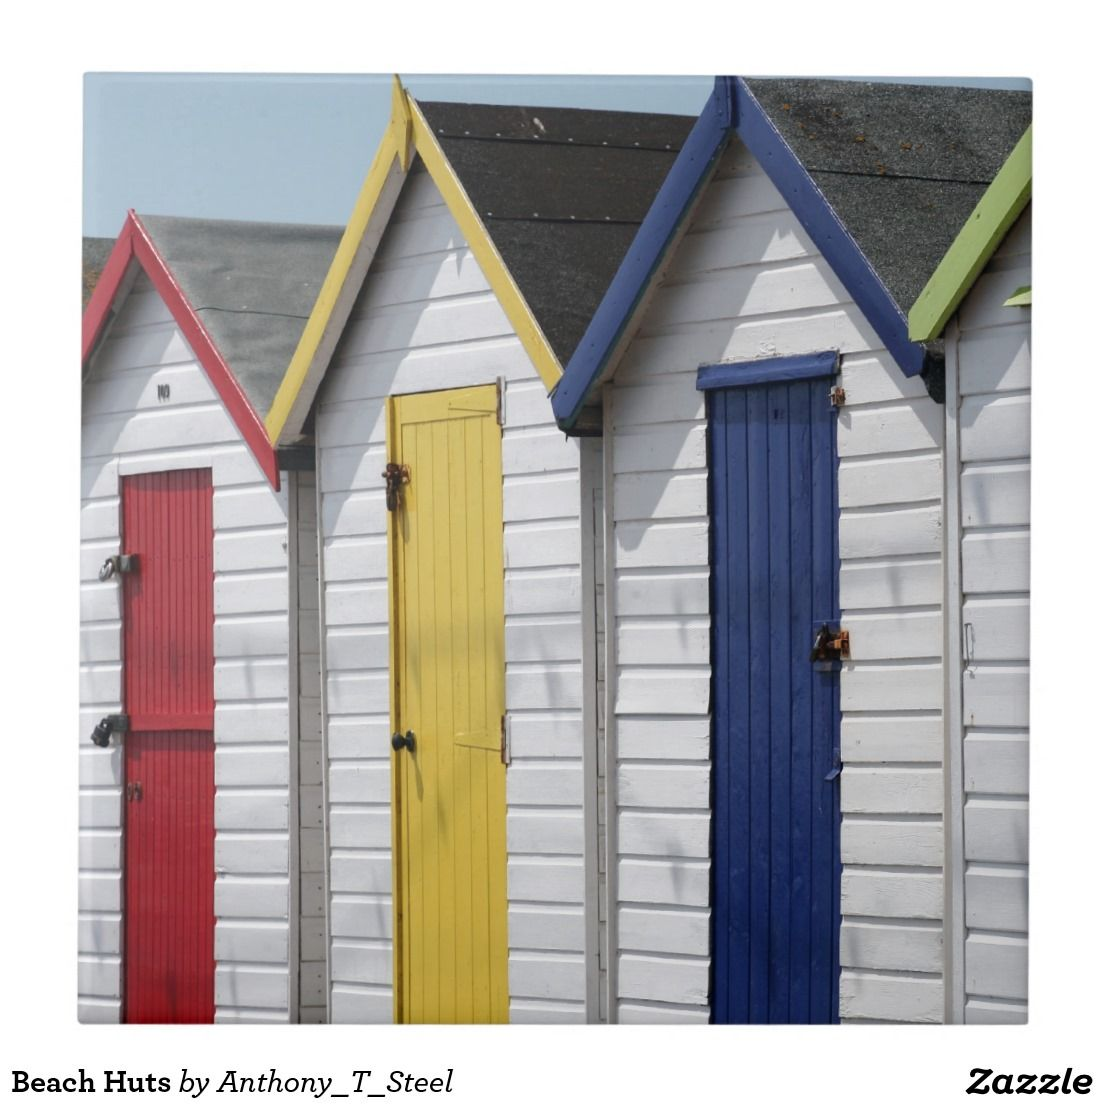 Beach Huts Ceramic Tile Traditional Wooden Colourful Beach Huts At